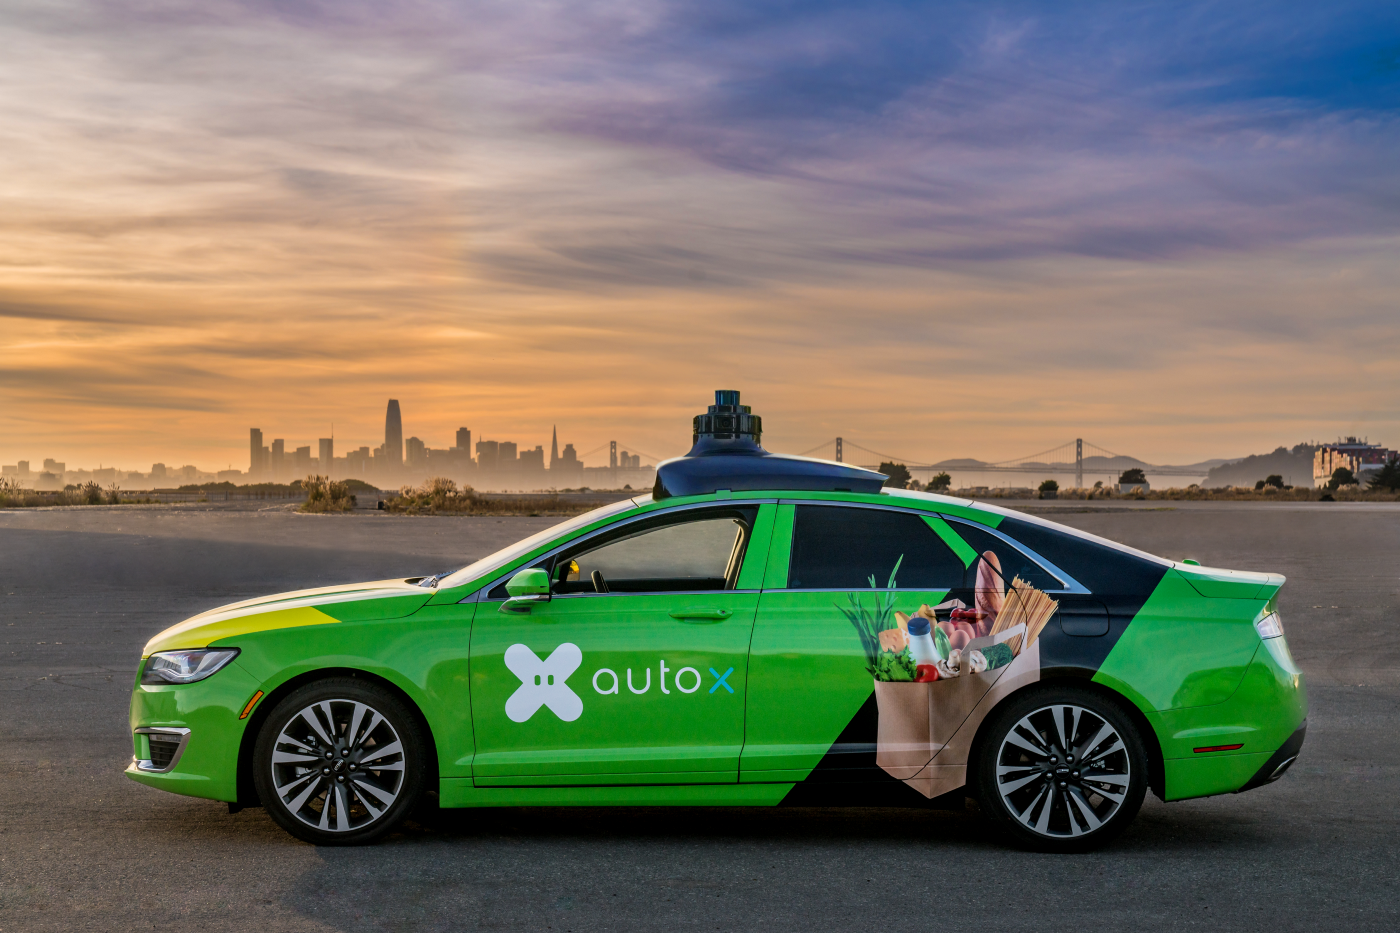 Using Autonomous Vehicles for Grocery Delivery